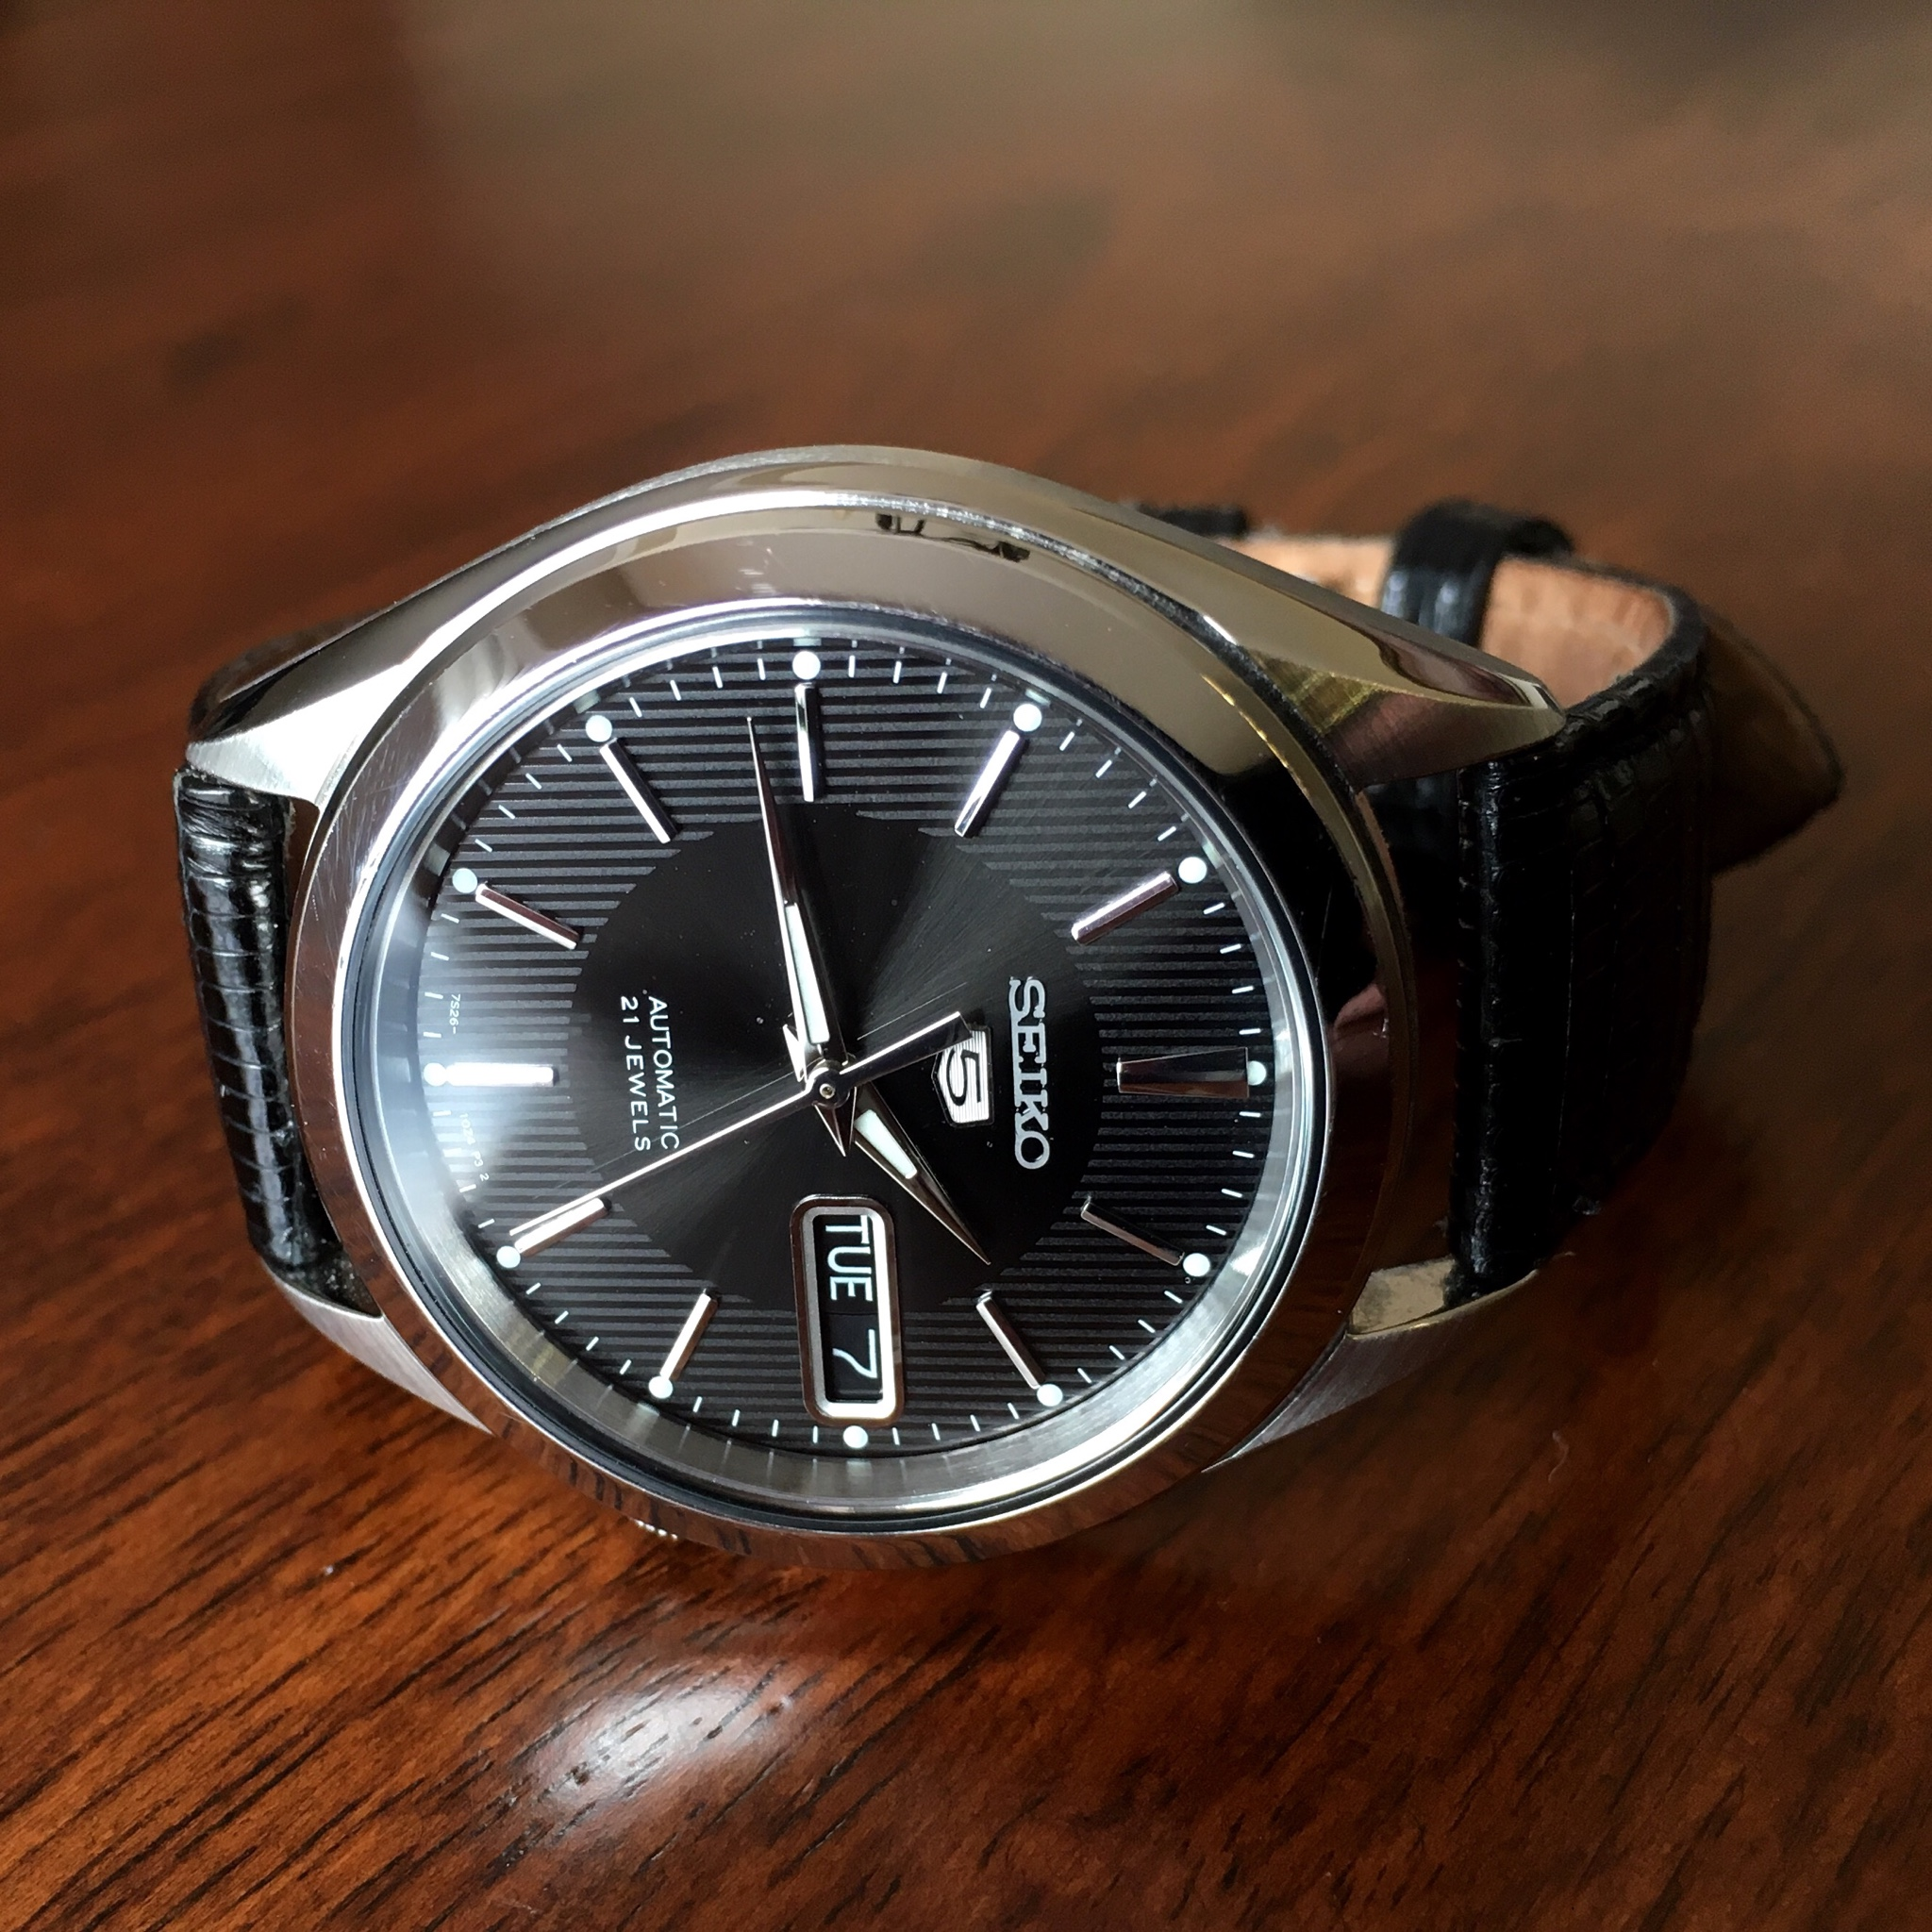 Is There An Alternative To The Seiko Snk809 Quality Price Wise